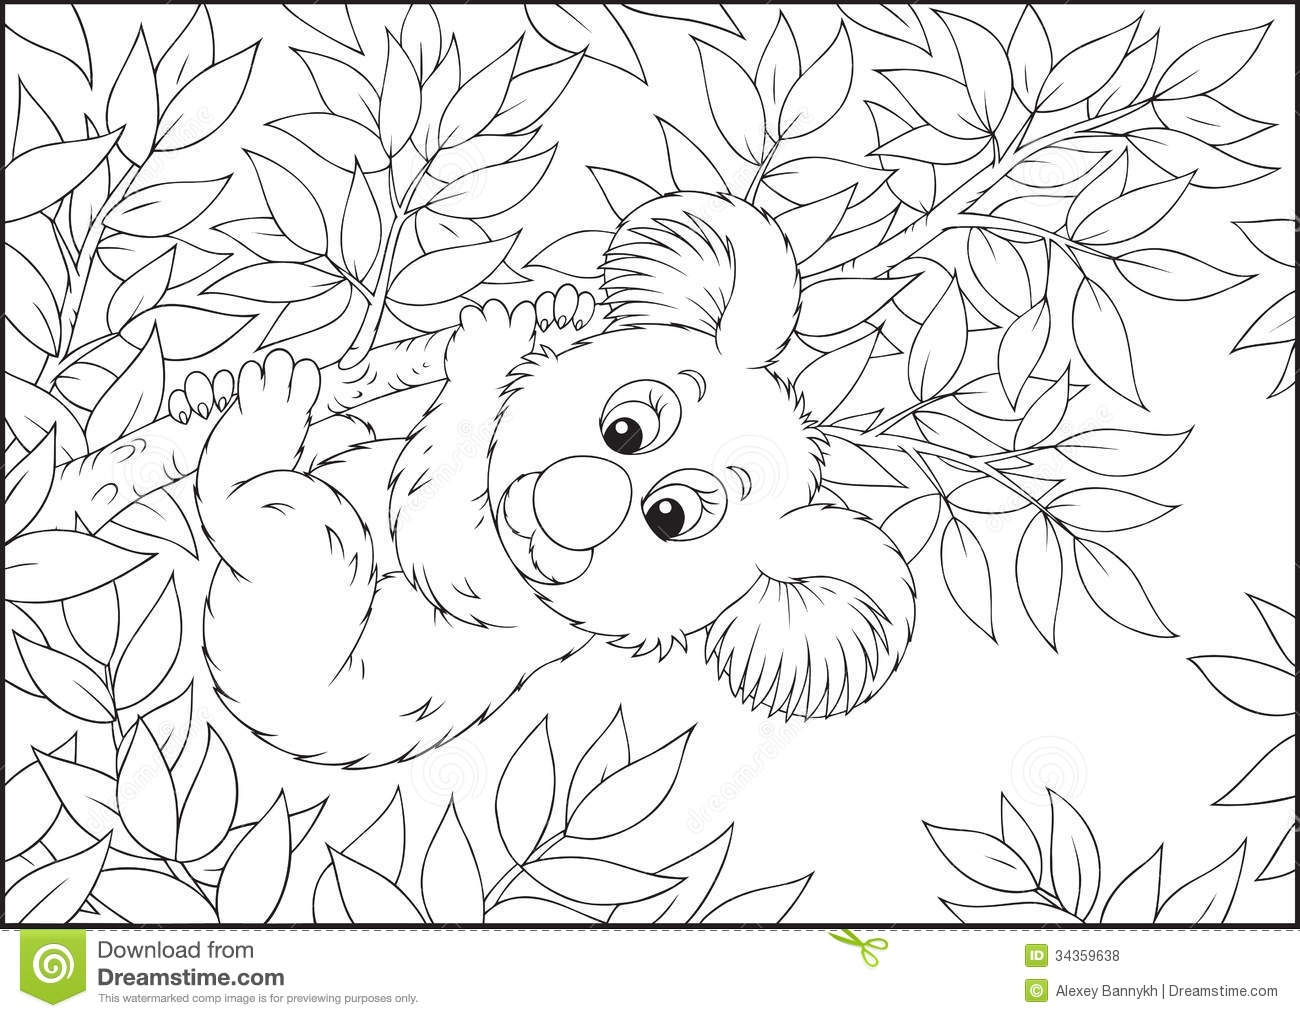 koala bear coloring page - royalty free stock photos koala bear hanging eucalyptus branch black white outline illustration coloring book image